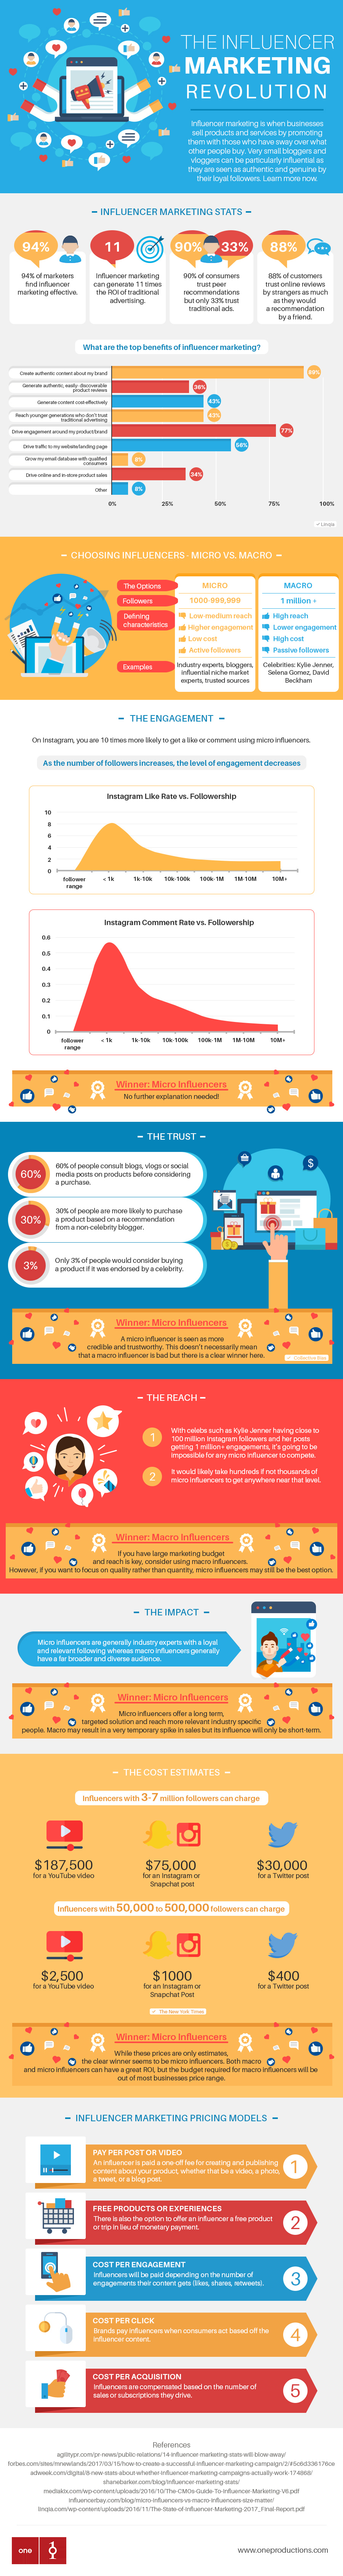 social media influencers infographic